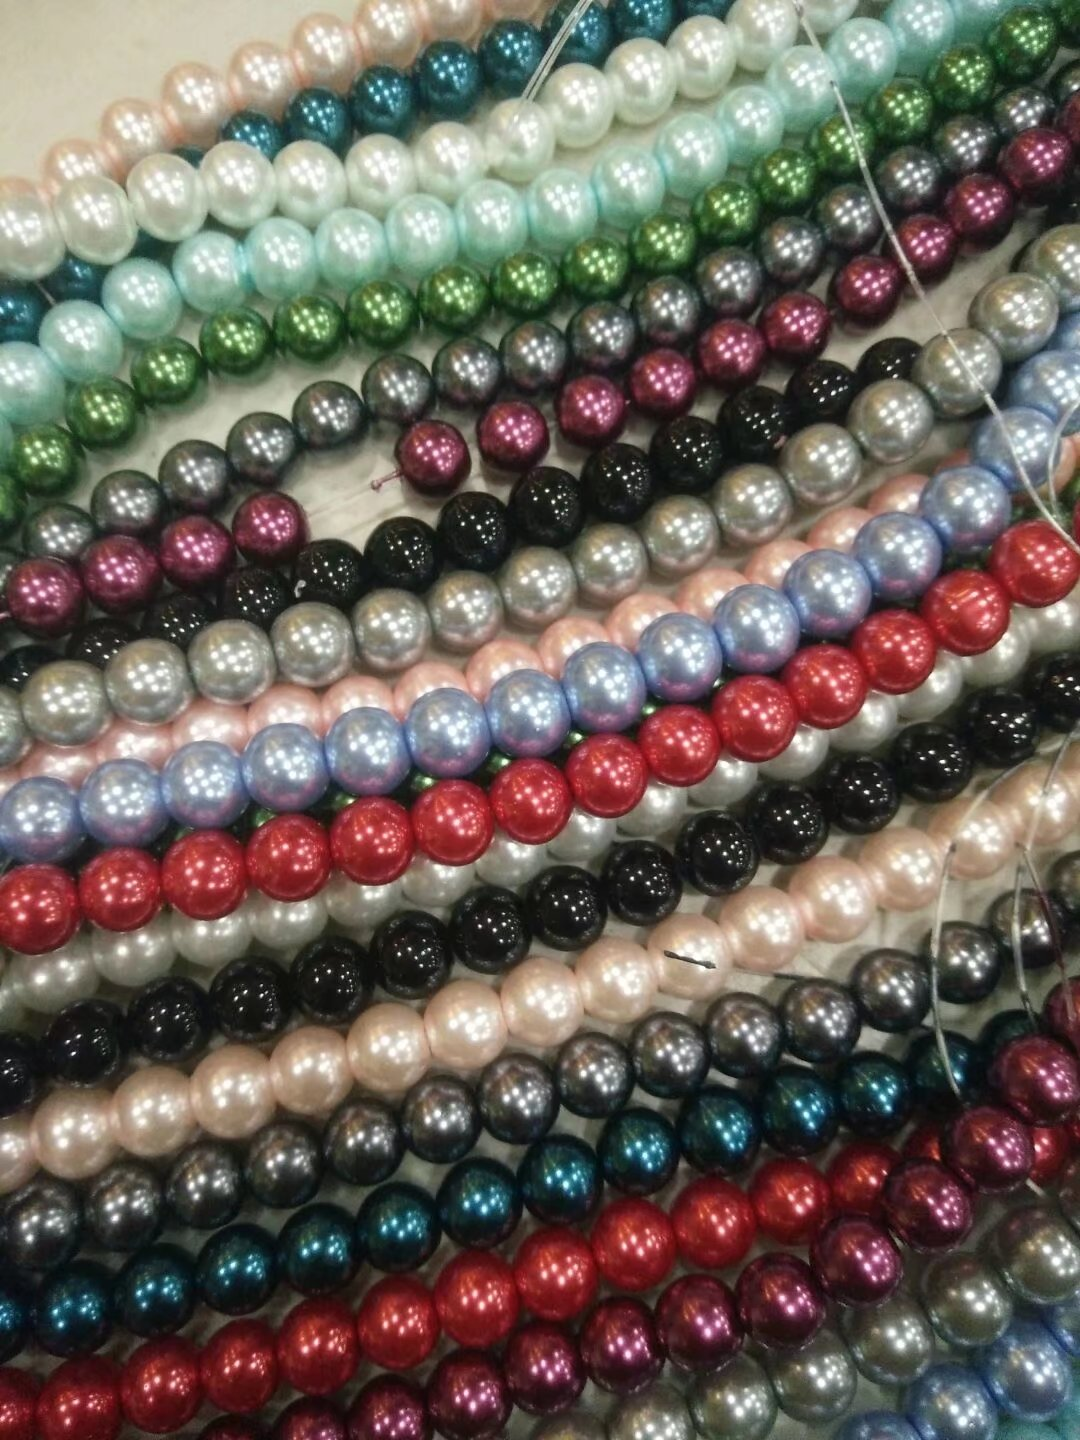 2,000 pcs Metallic Silver Artificial Plastic Pearls 4mm Tiny Round Craft Beads